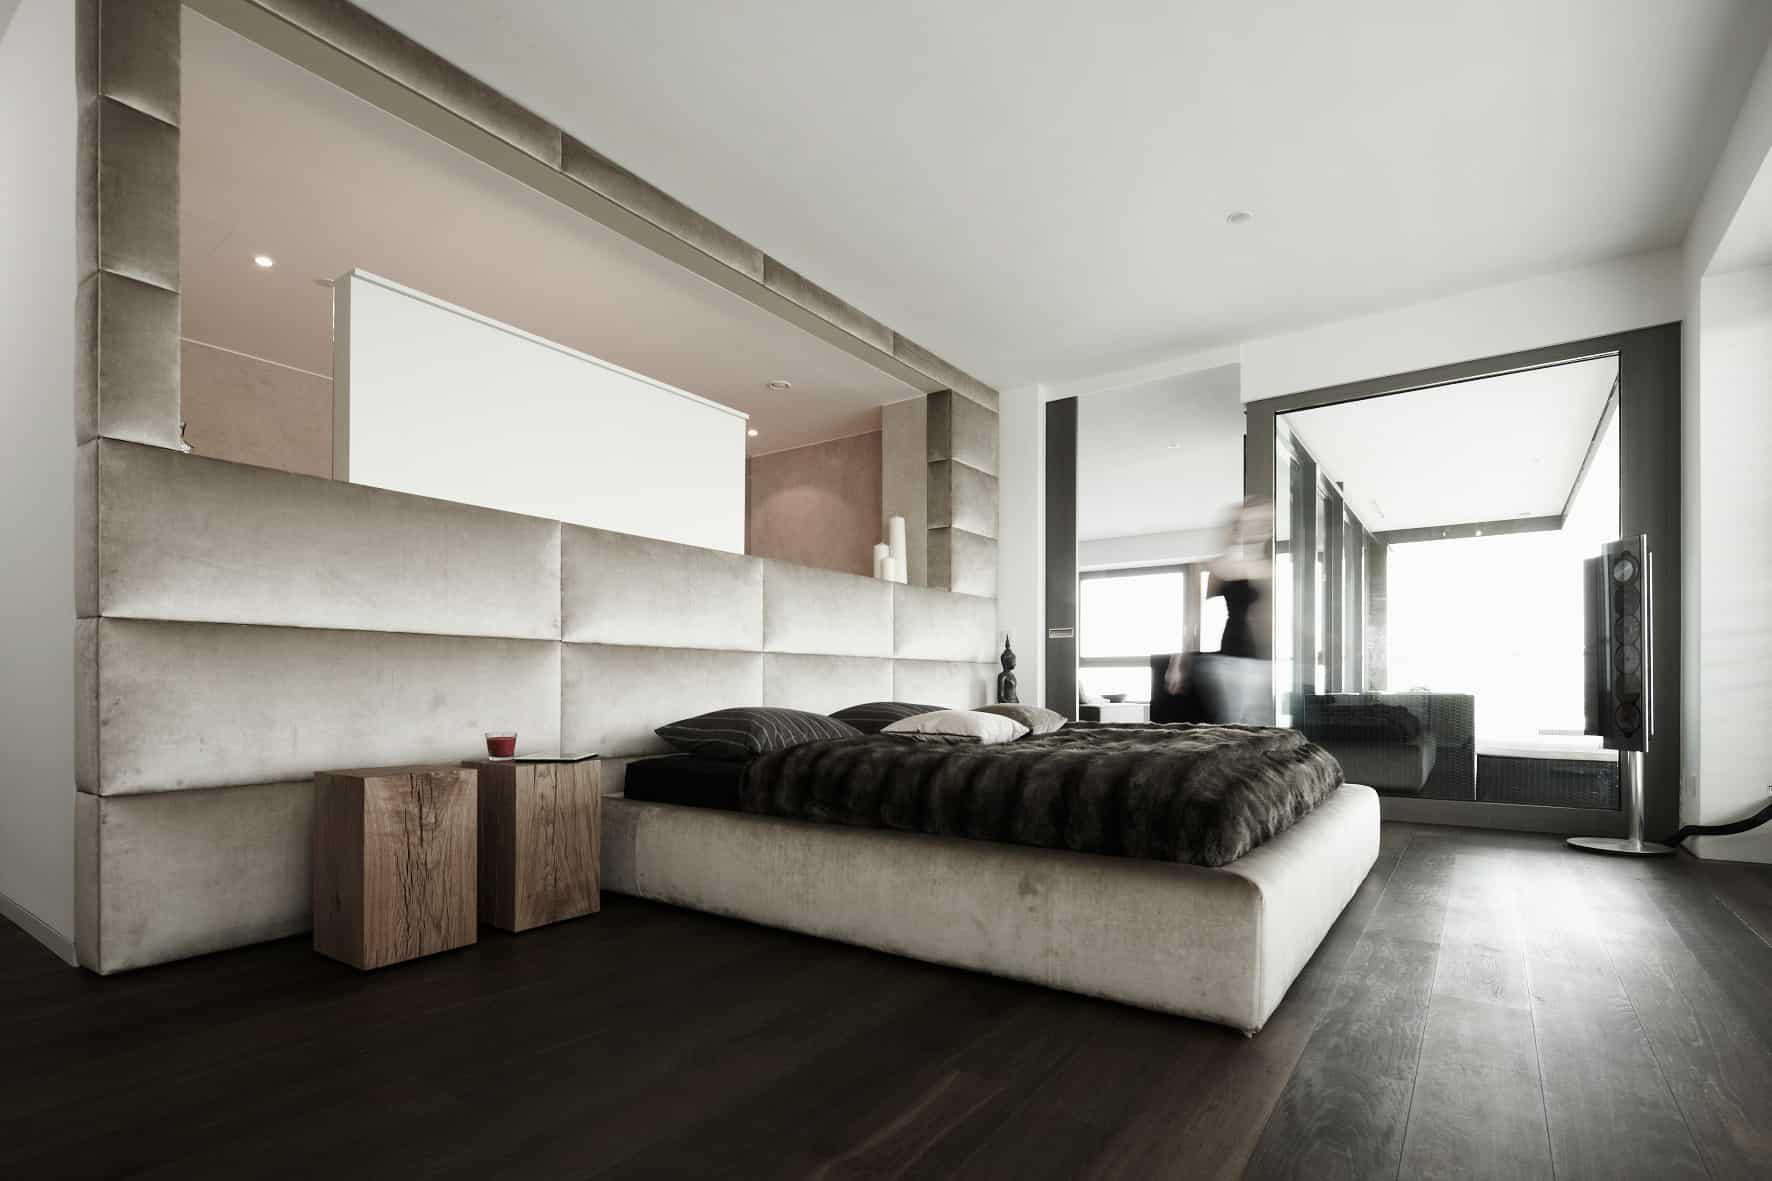 eggersmann shelving and hideaway shelving create a clutter free modern luxury bedroom